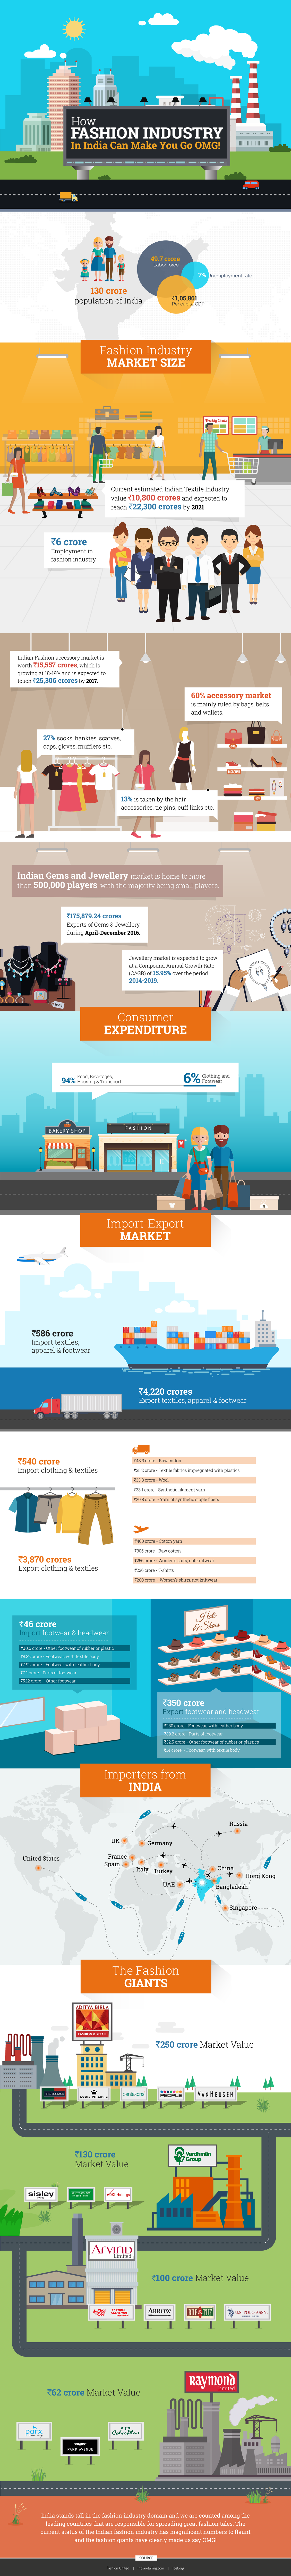 Shopperstop Infographics